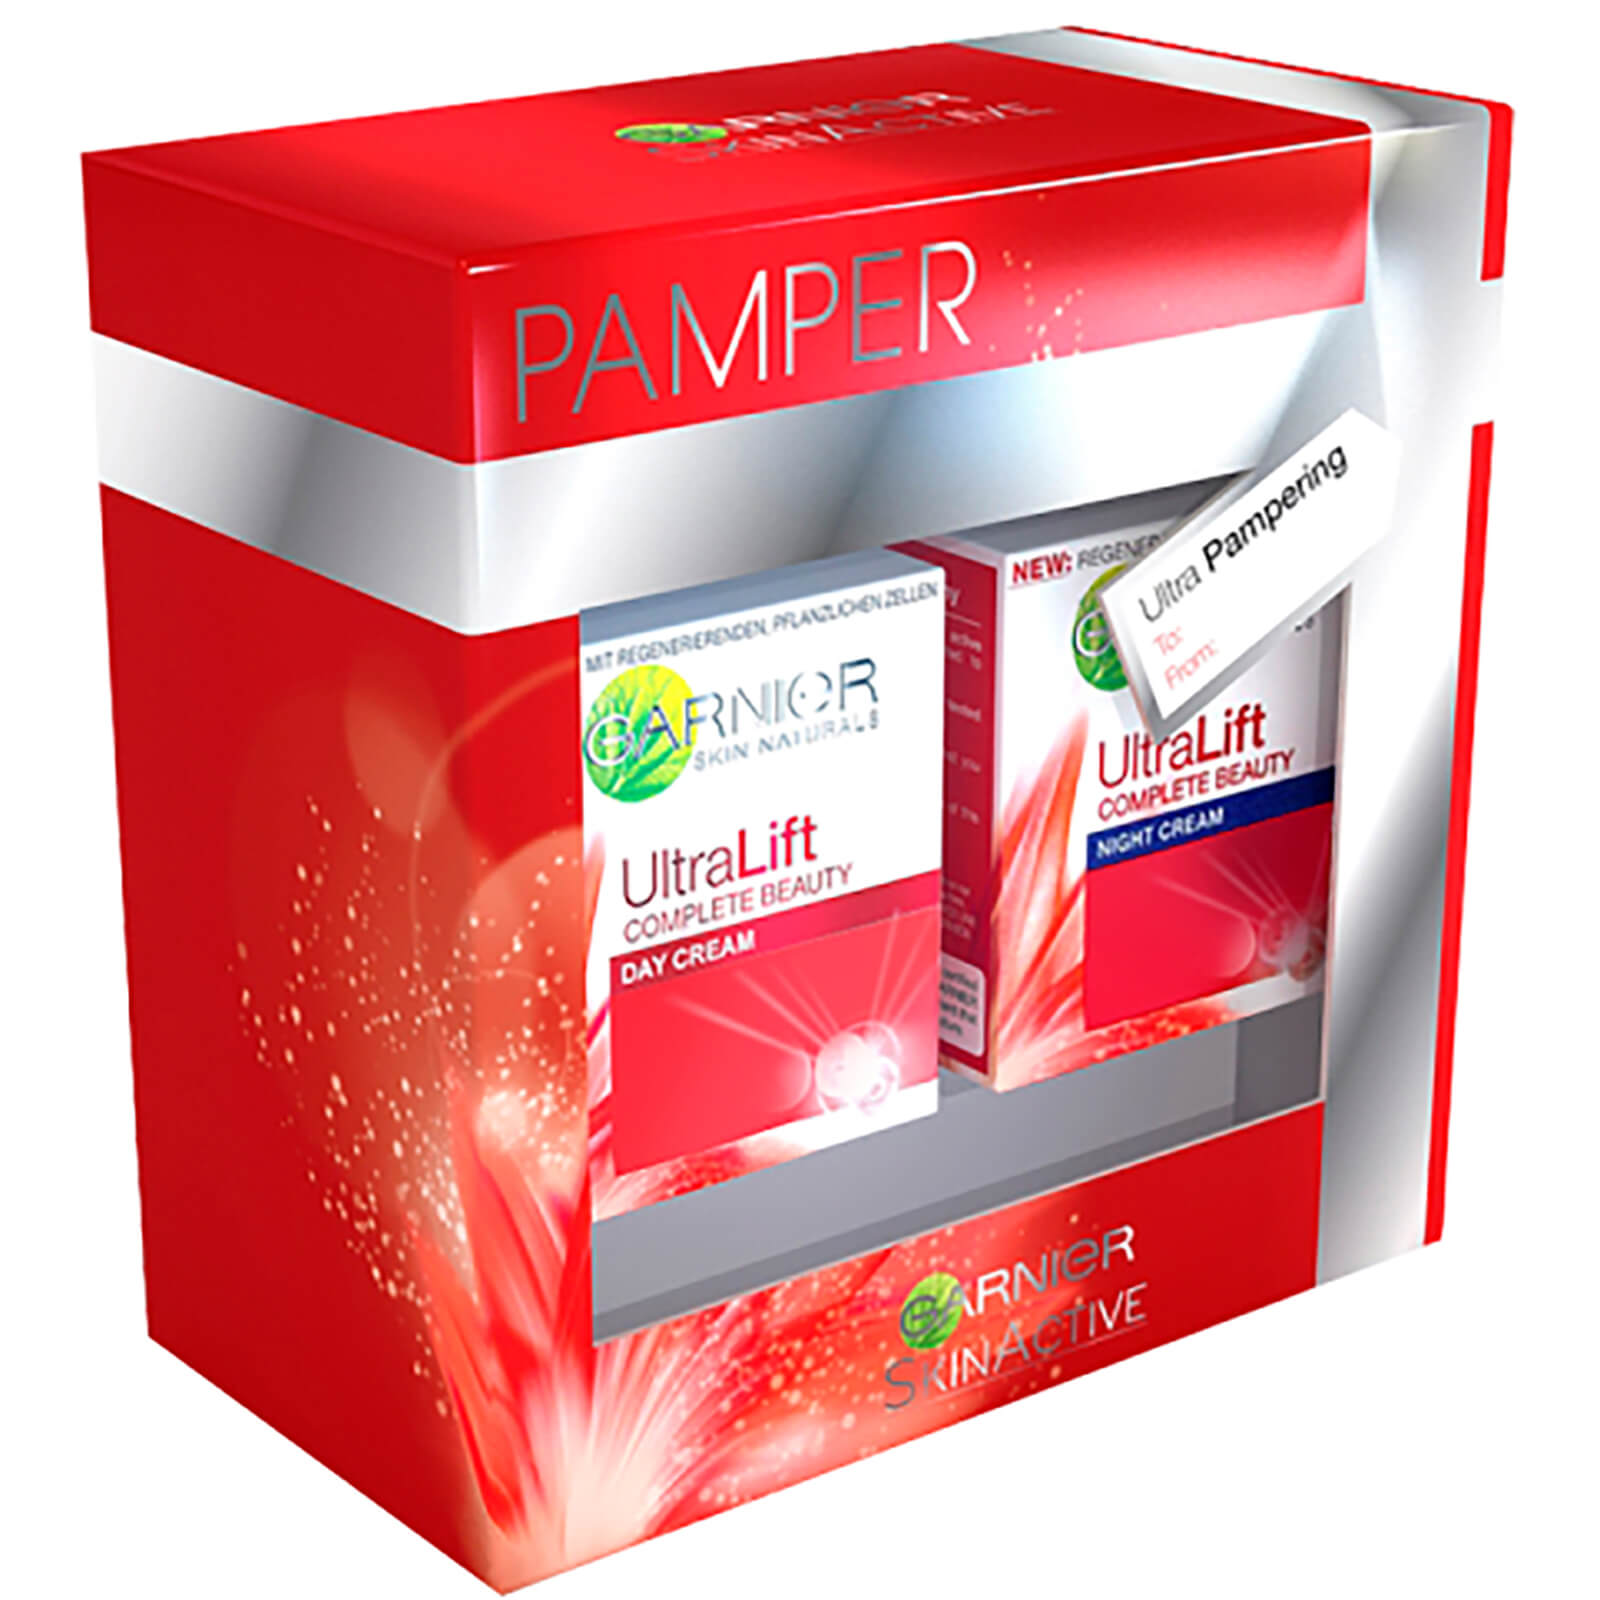 Garnier Ultralift Pamper Gift Set. Description